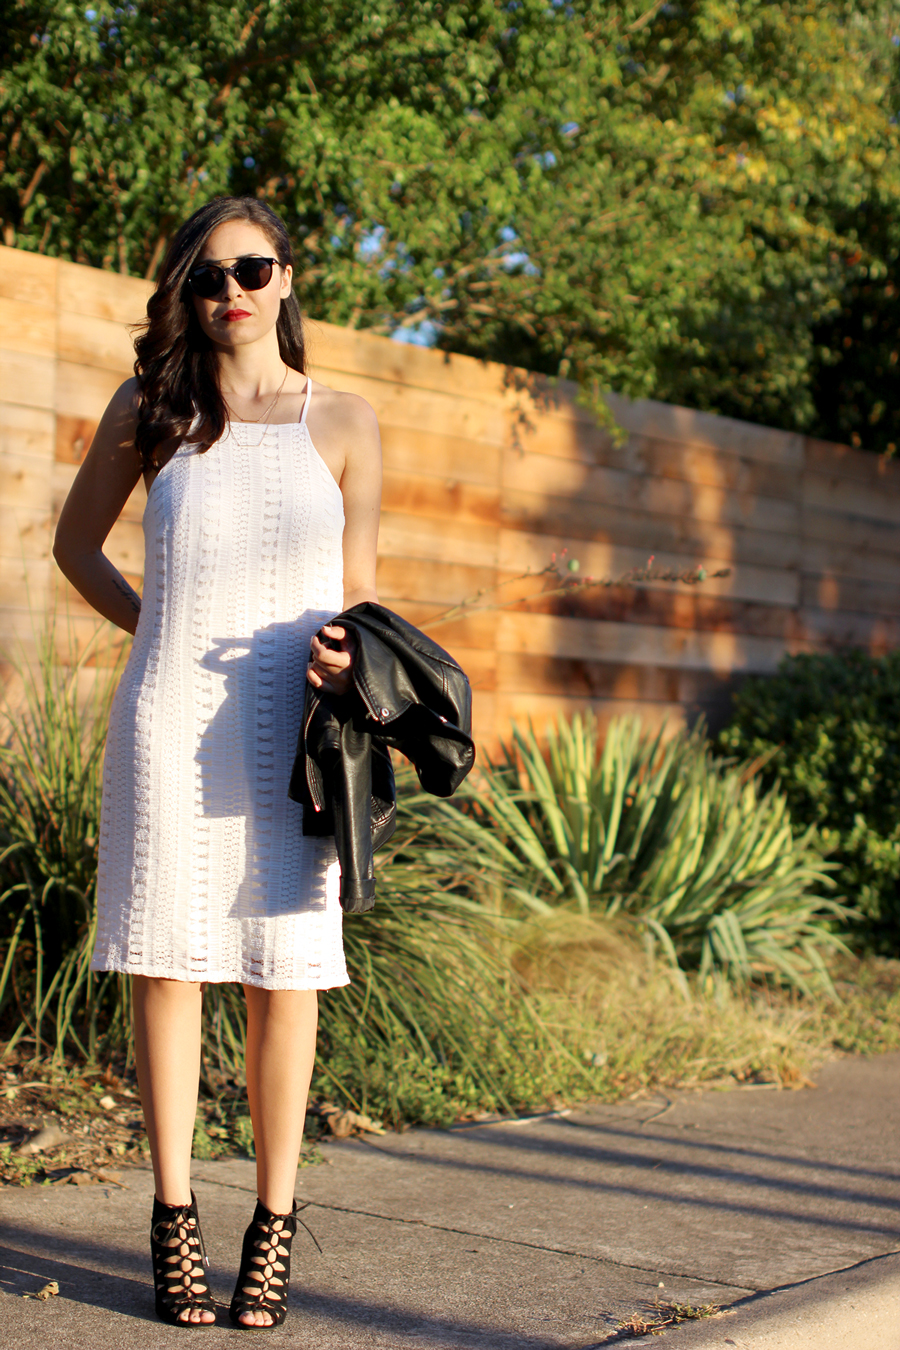 FIXIN-TO-THRILL-WHITE-HALTER-DRESS-STRAPPY-HEELS-LEATHER-TREND-FALL-OCTOBER-ATX-AUSTIN-STYLE-BLOG-FW15-TRENDY-CHIC-GLAM-TEXAS-3